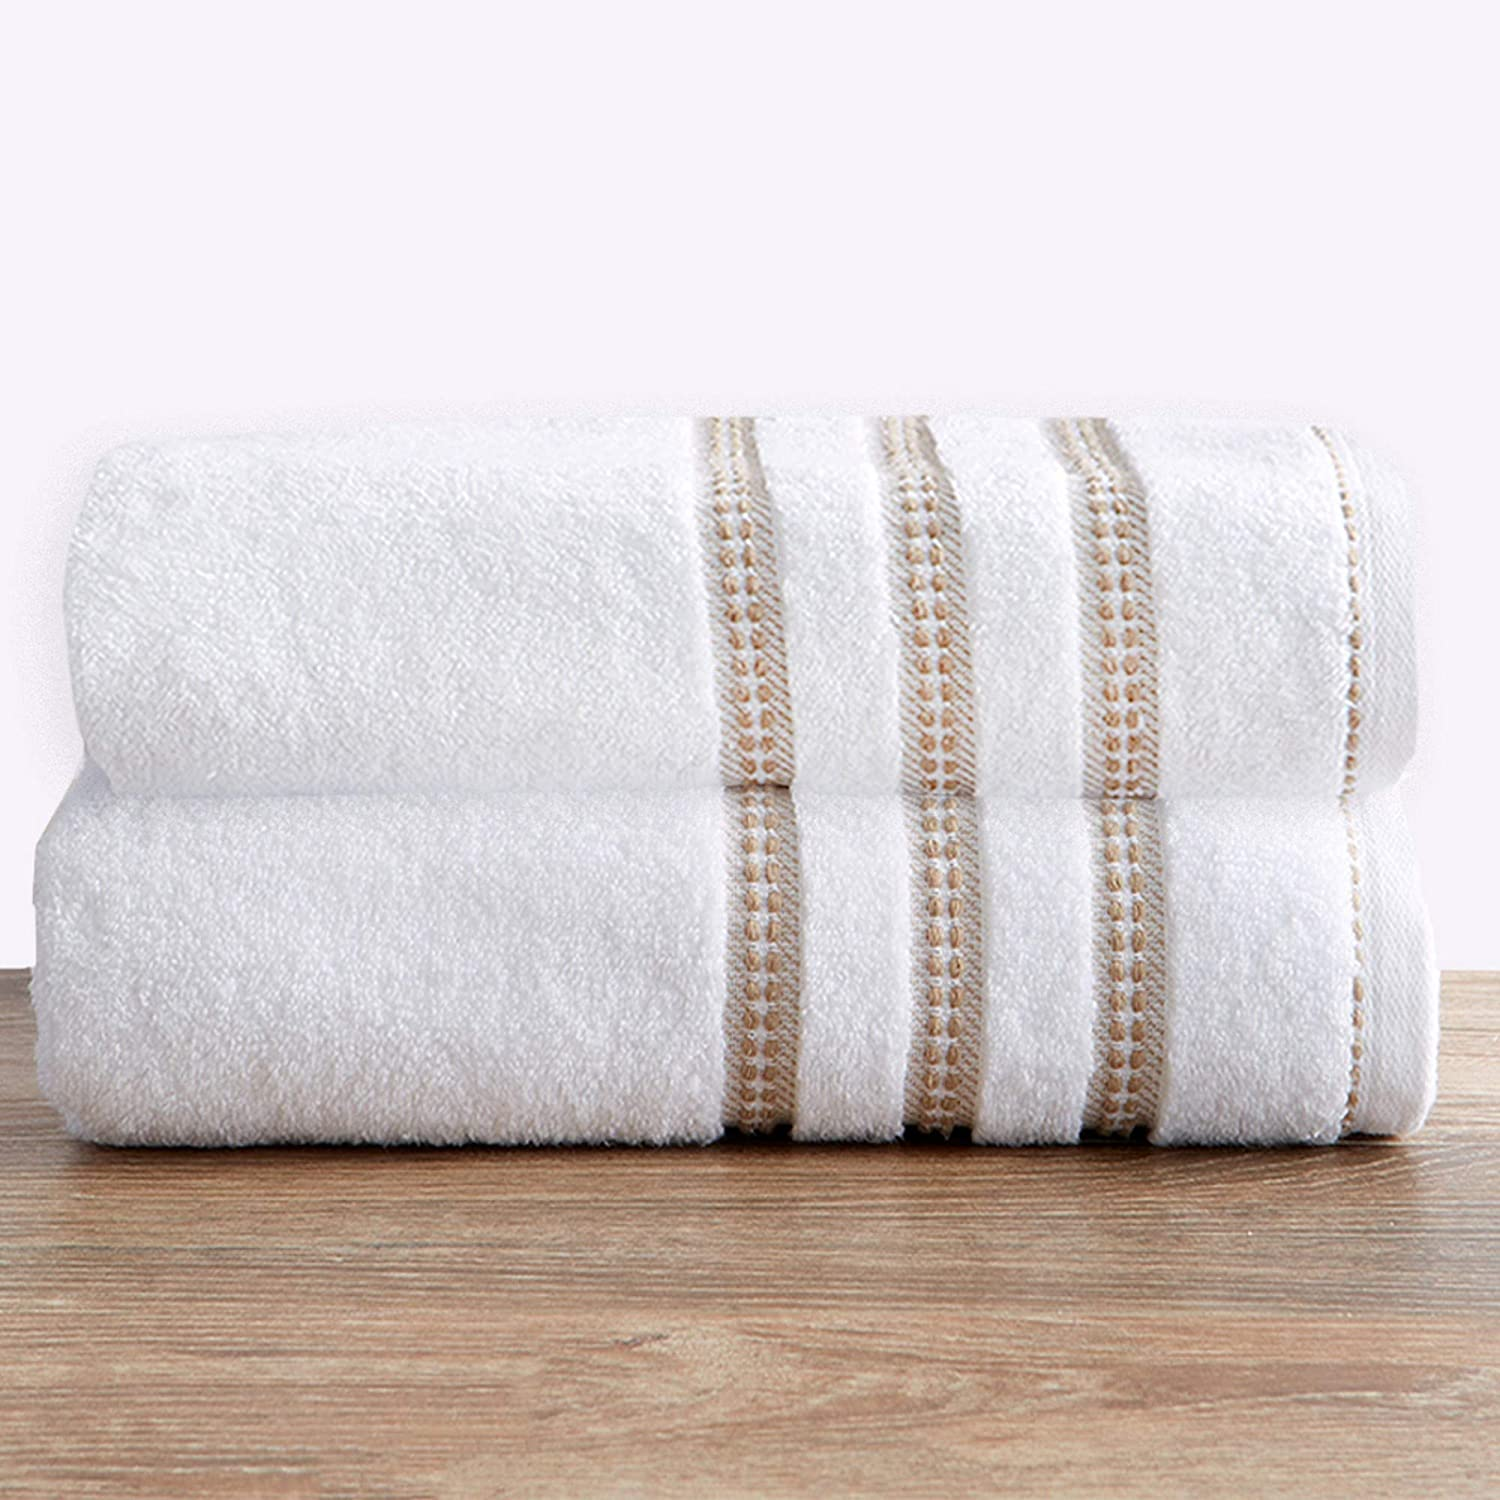 100% Cotton Plush Bath Towel Set (30 x 52 inches) Absorbent Floral Jacquard Luxury Towels. Roselyn Collection (Set of 2, White / Taupe)